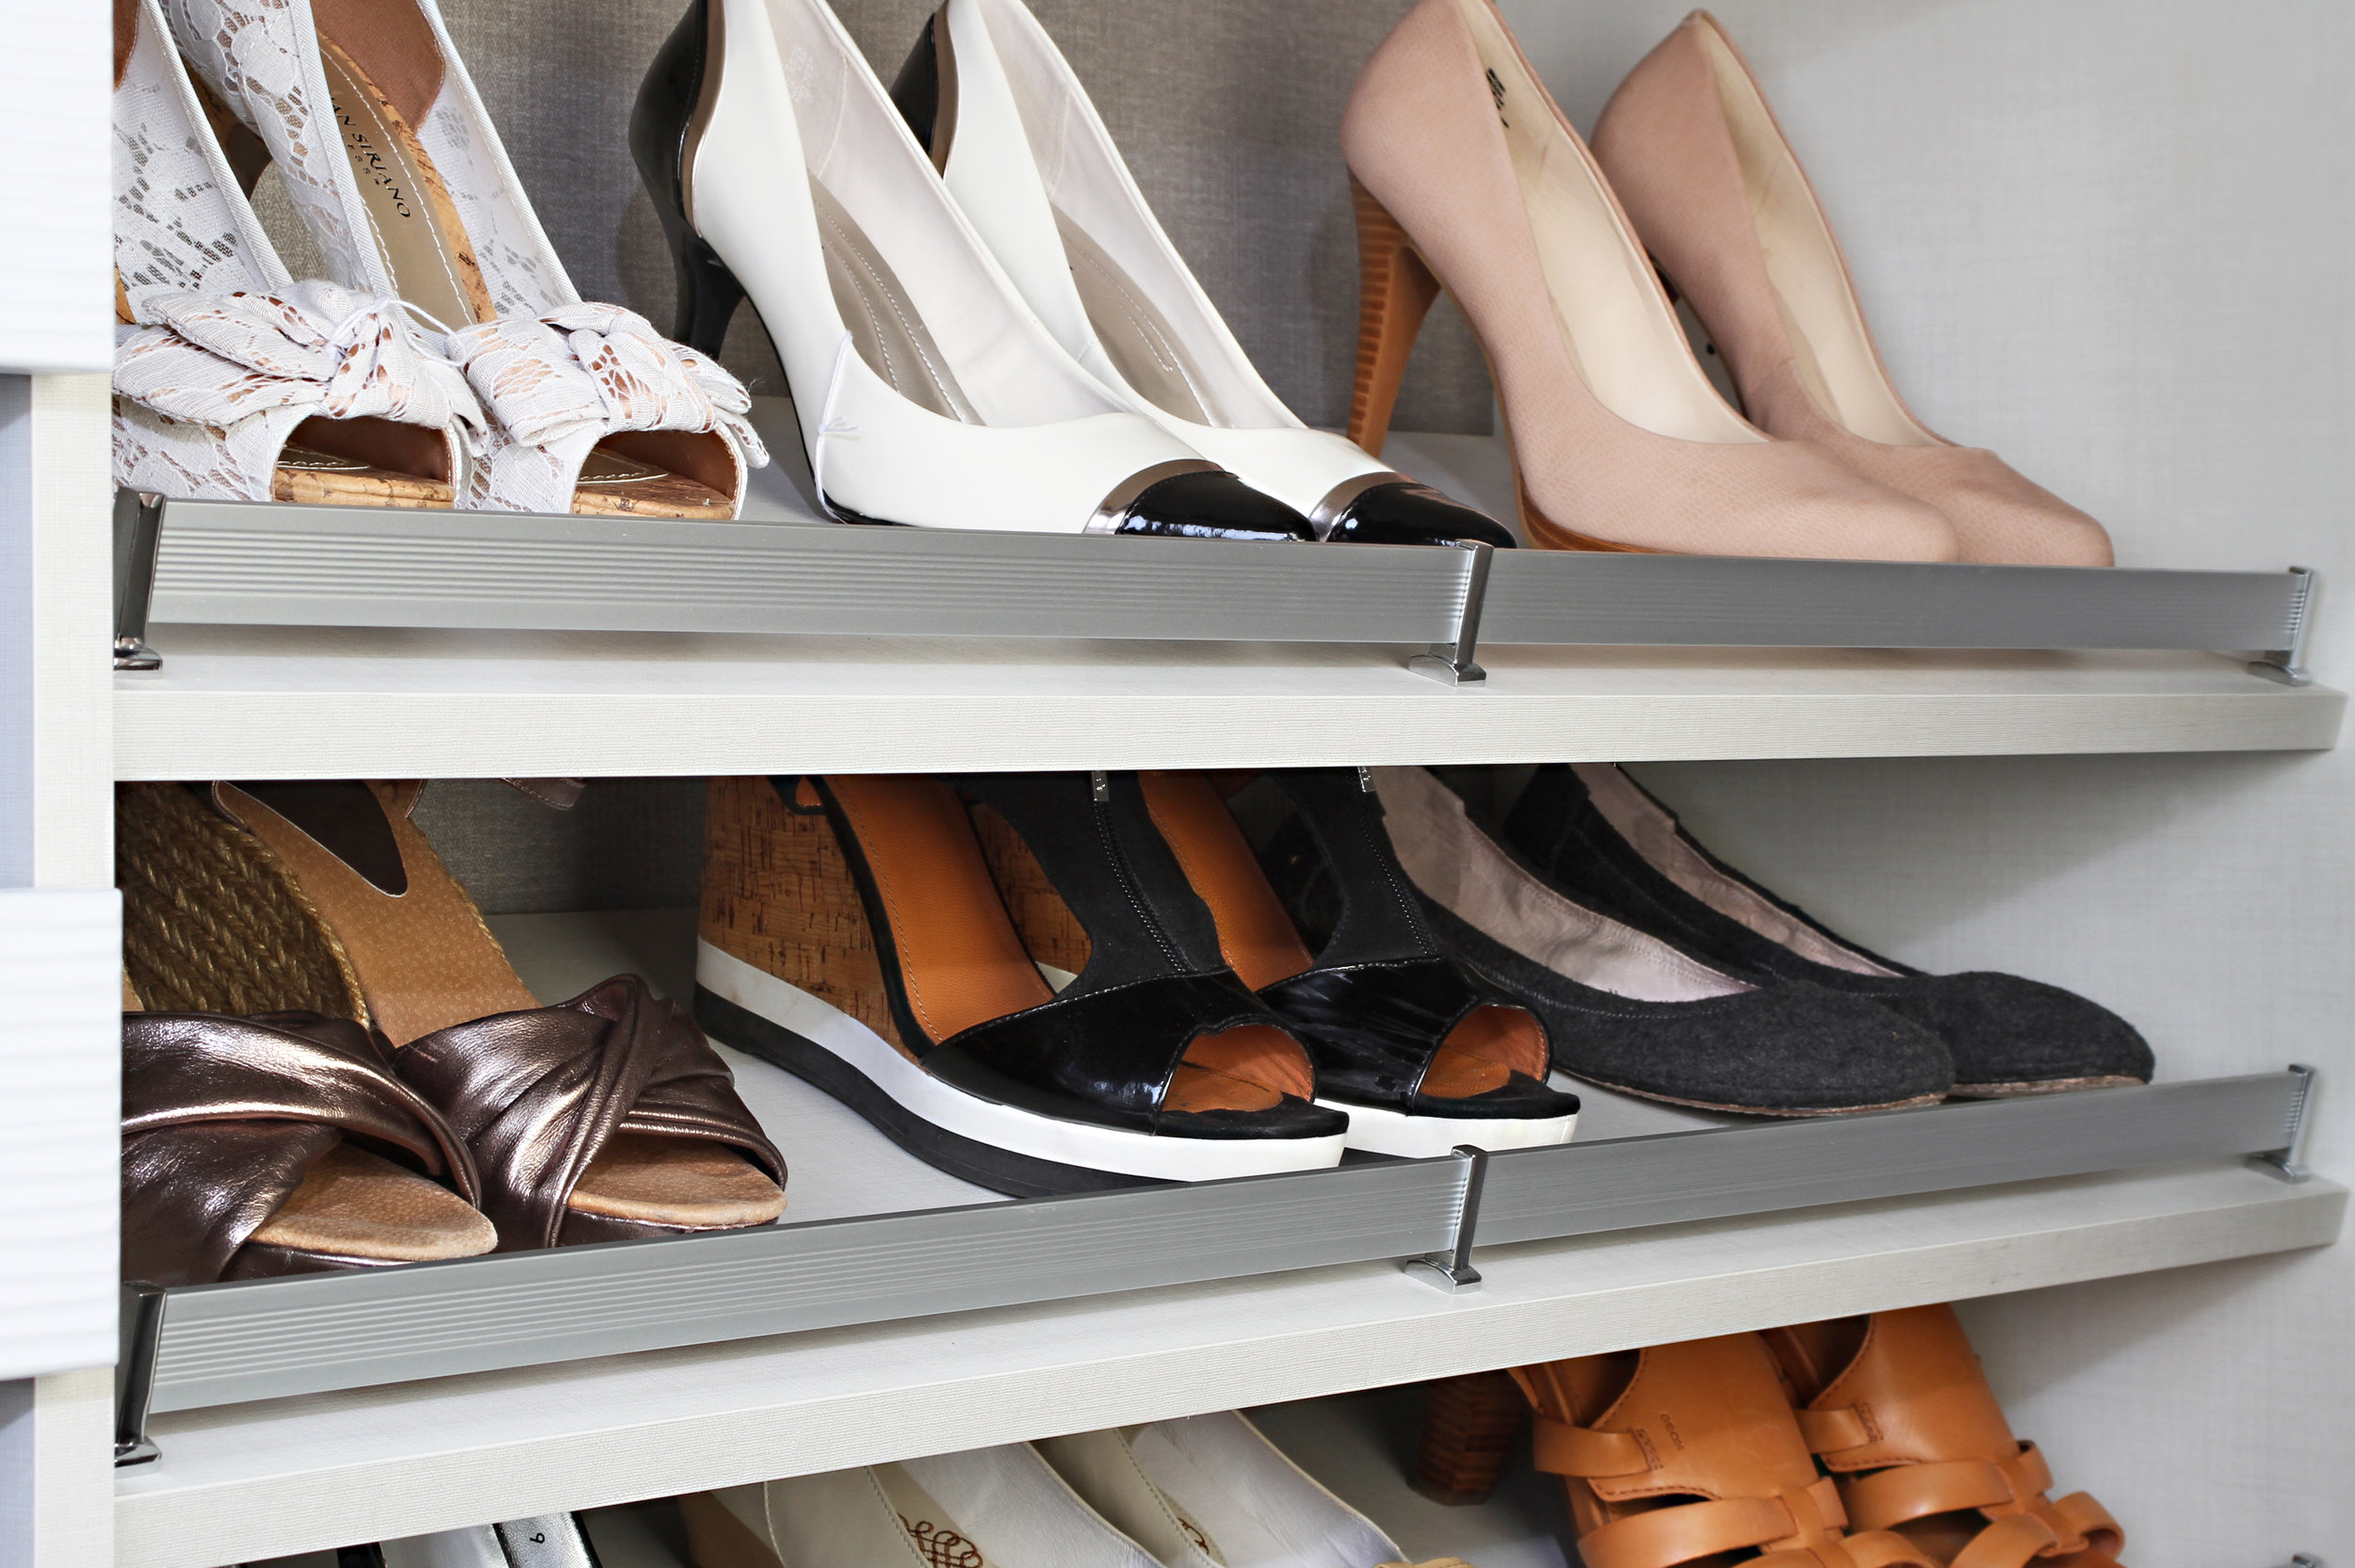 Give your shoe rack a clean, organized look with shoe fences by TAG Hardware.  Call Closets of Tulsa  now for your FREE consultation and 3-D closet design:  918.609.0214 .